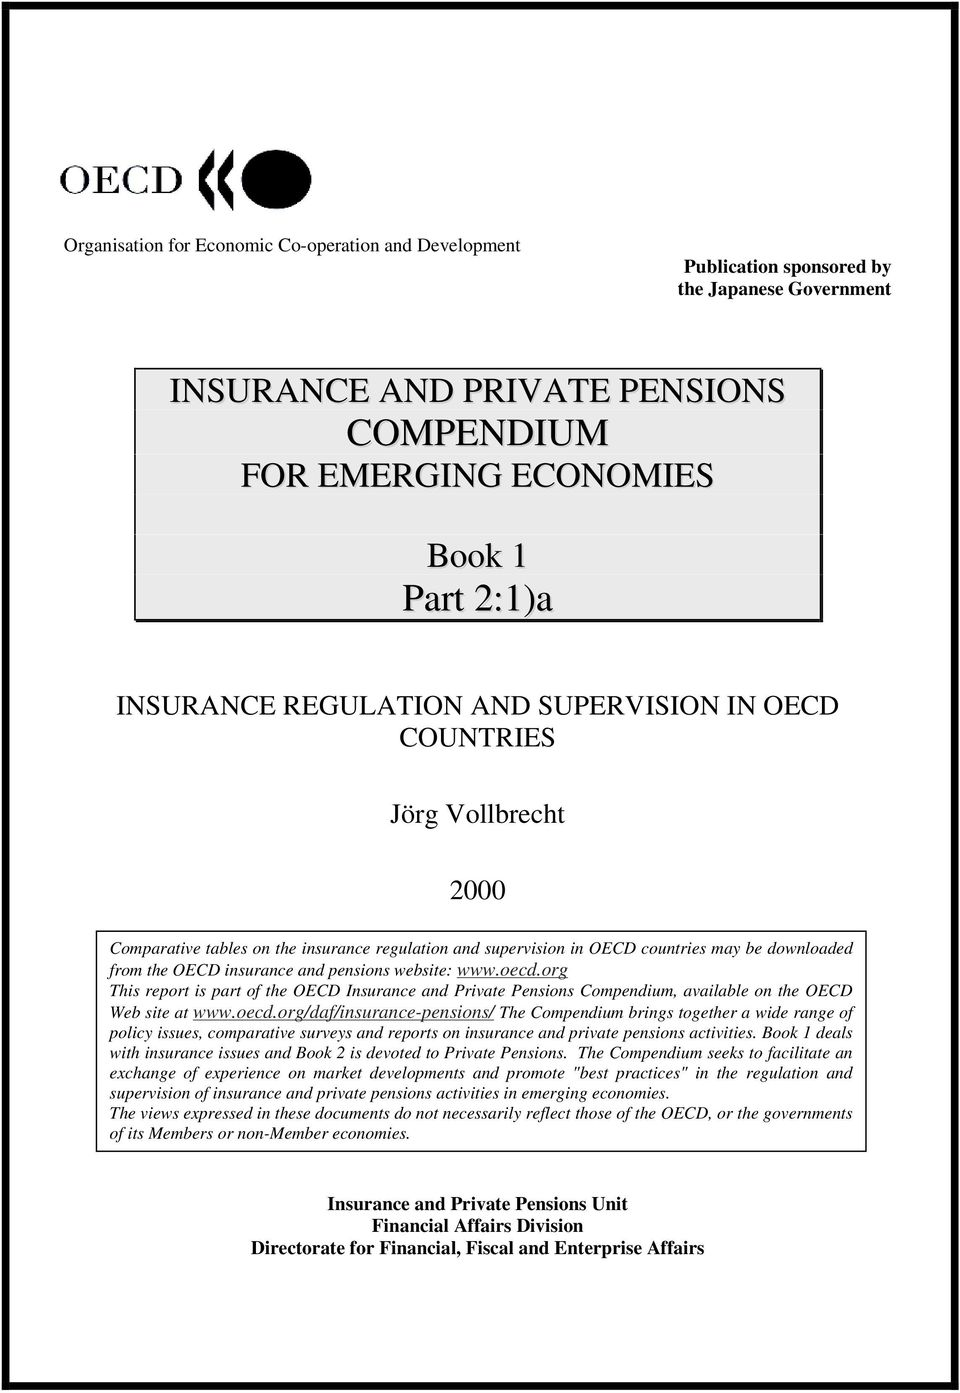 pensions website: www.oecd.org This report is part of the OECD Insurance and Private Pensions Compendium, available on the OECD Web site at www.oecd.org/daf/insurance-pensions/ The Compendium brings together a wide range of policy issues, comparative surveys and reports on insurance and private pensions activities.